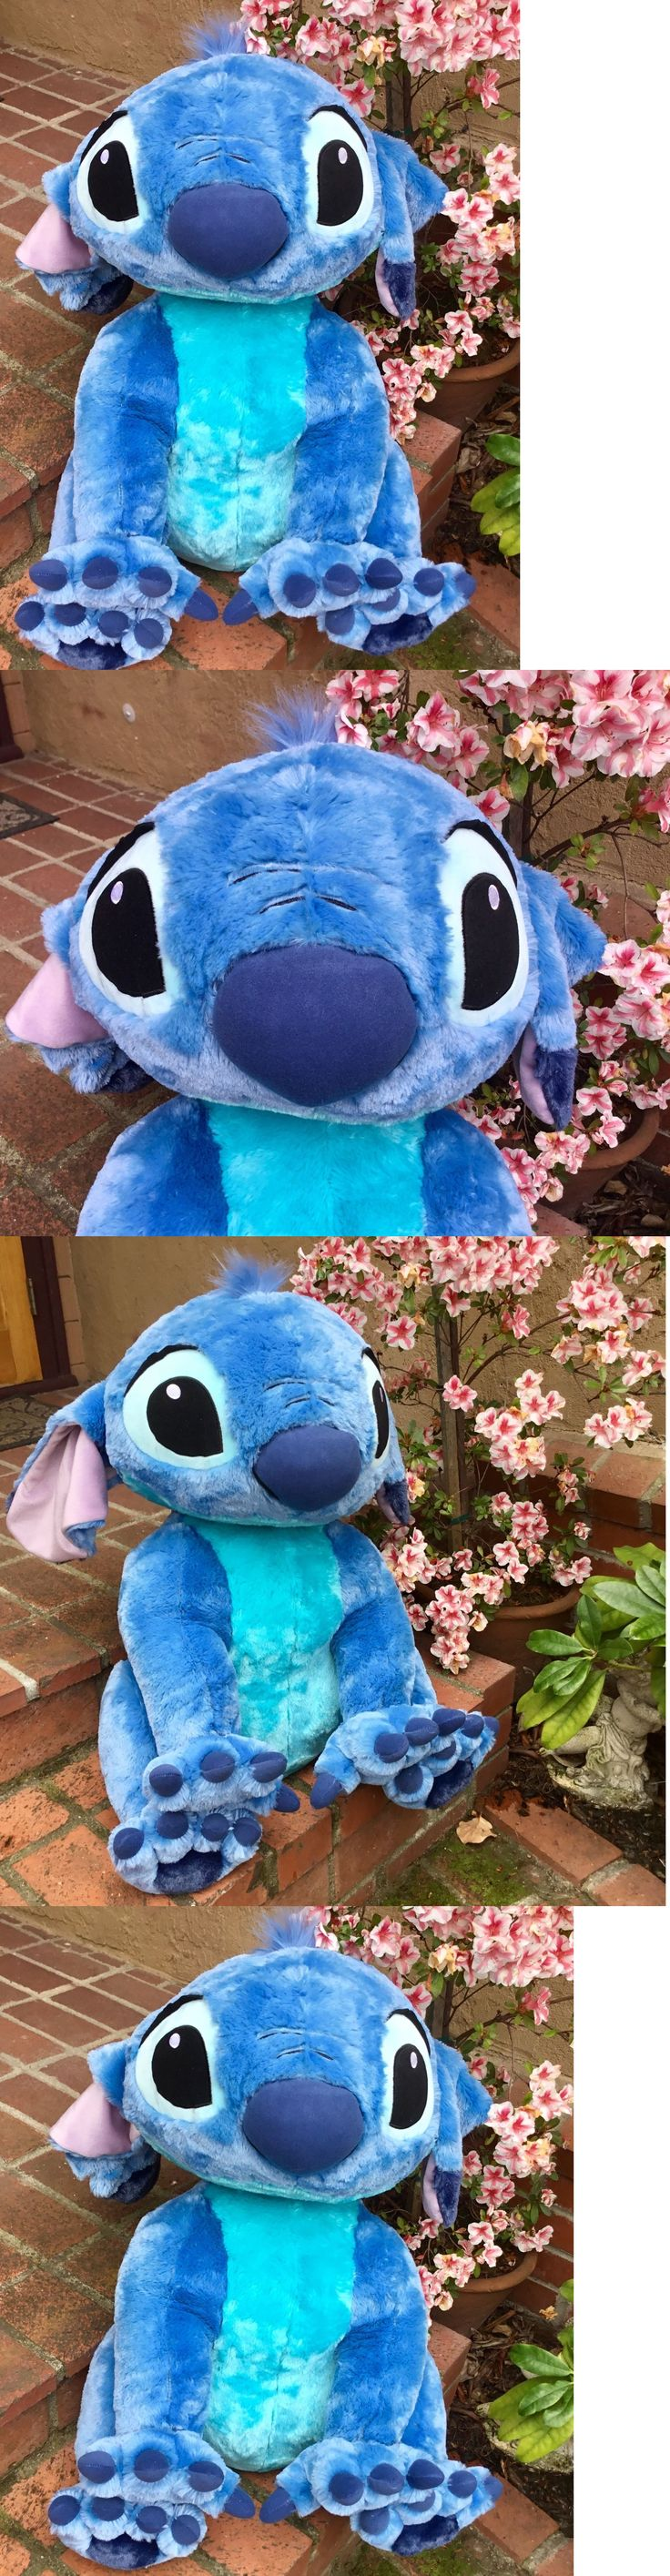 Lilo and Stitch 44035: Supersized!! 31 Nwt Euro Disney Store Lilo And Stitch Plush Stuffed Doll Soft Toy -> BUY IT NOW ONLY: $184.99 on eBay!